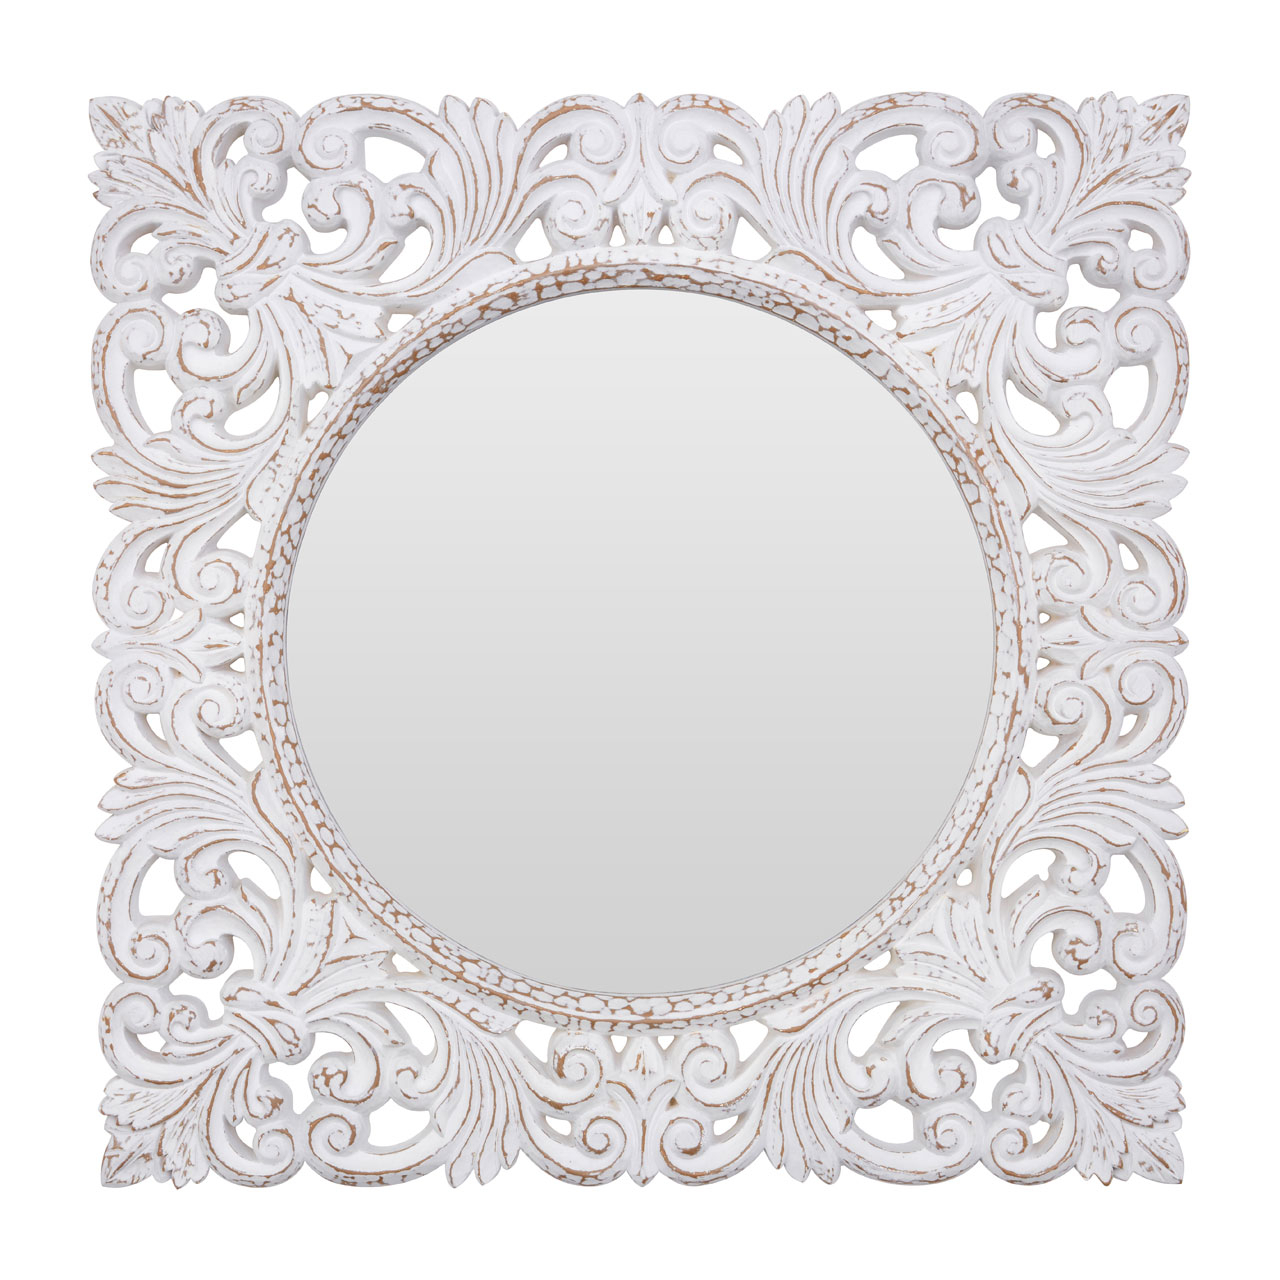 White Round Wall Mirrors Intended For Famous Details About Helga Wall Mirror Polyurethane Frame Antique White Round Home Décor Contemporary (View 15 of 20)